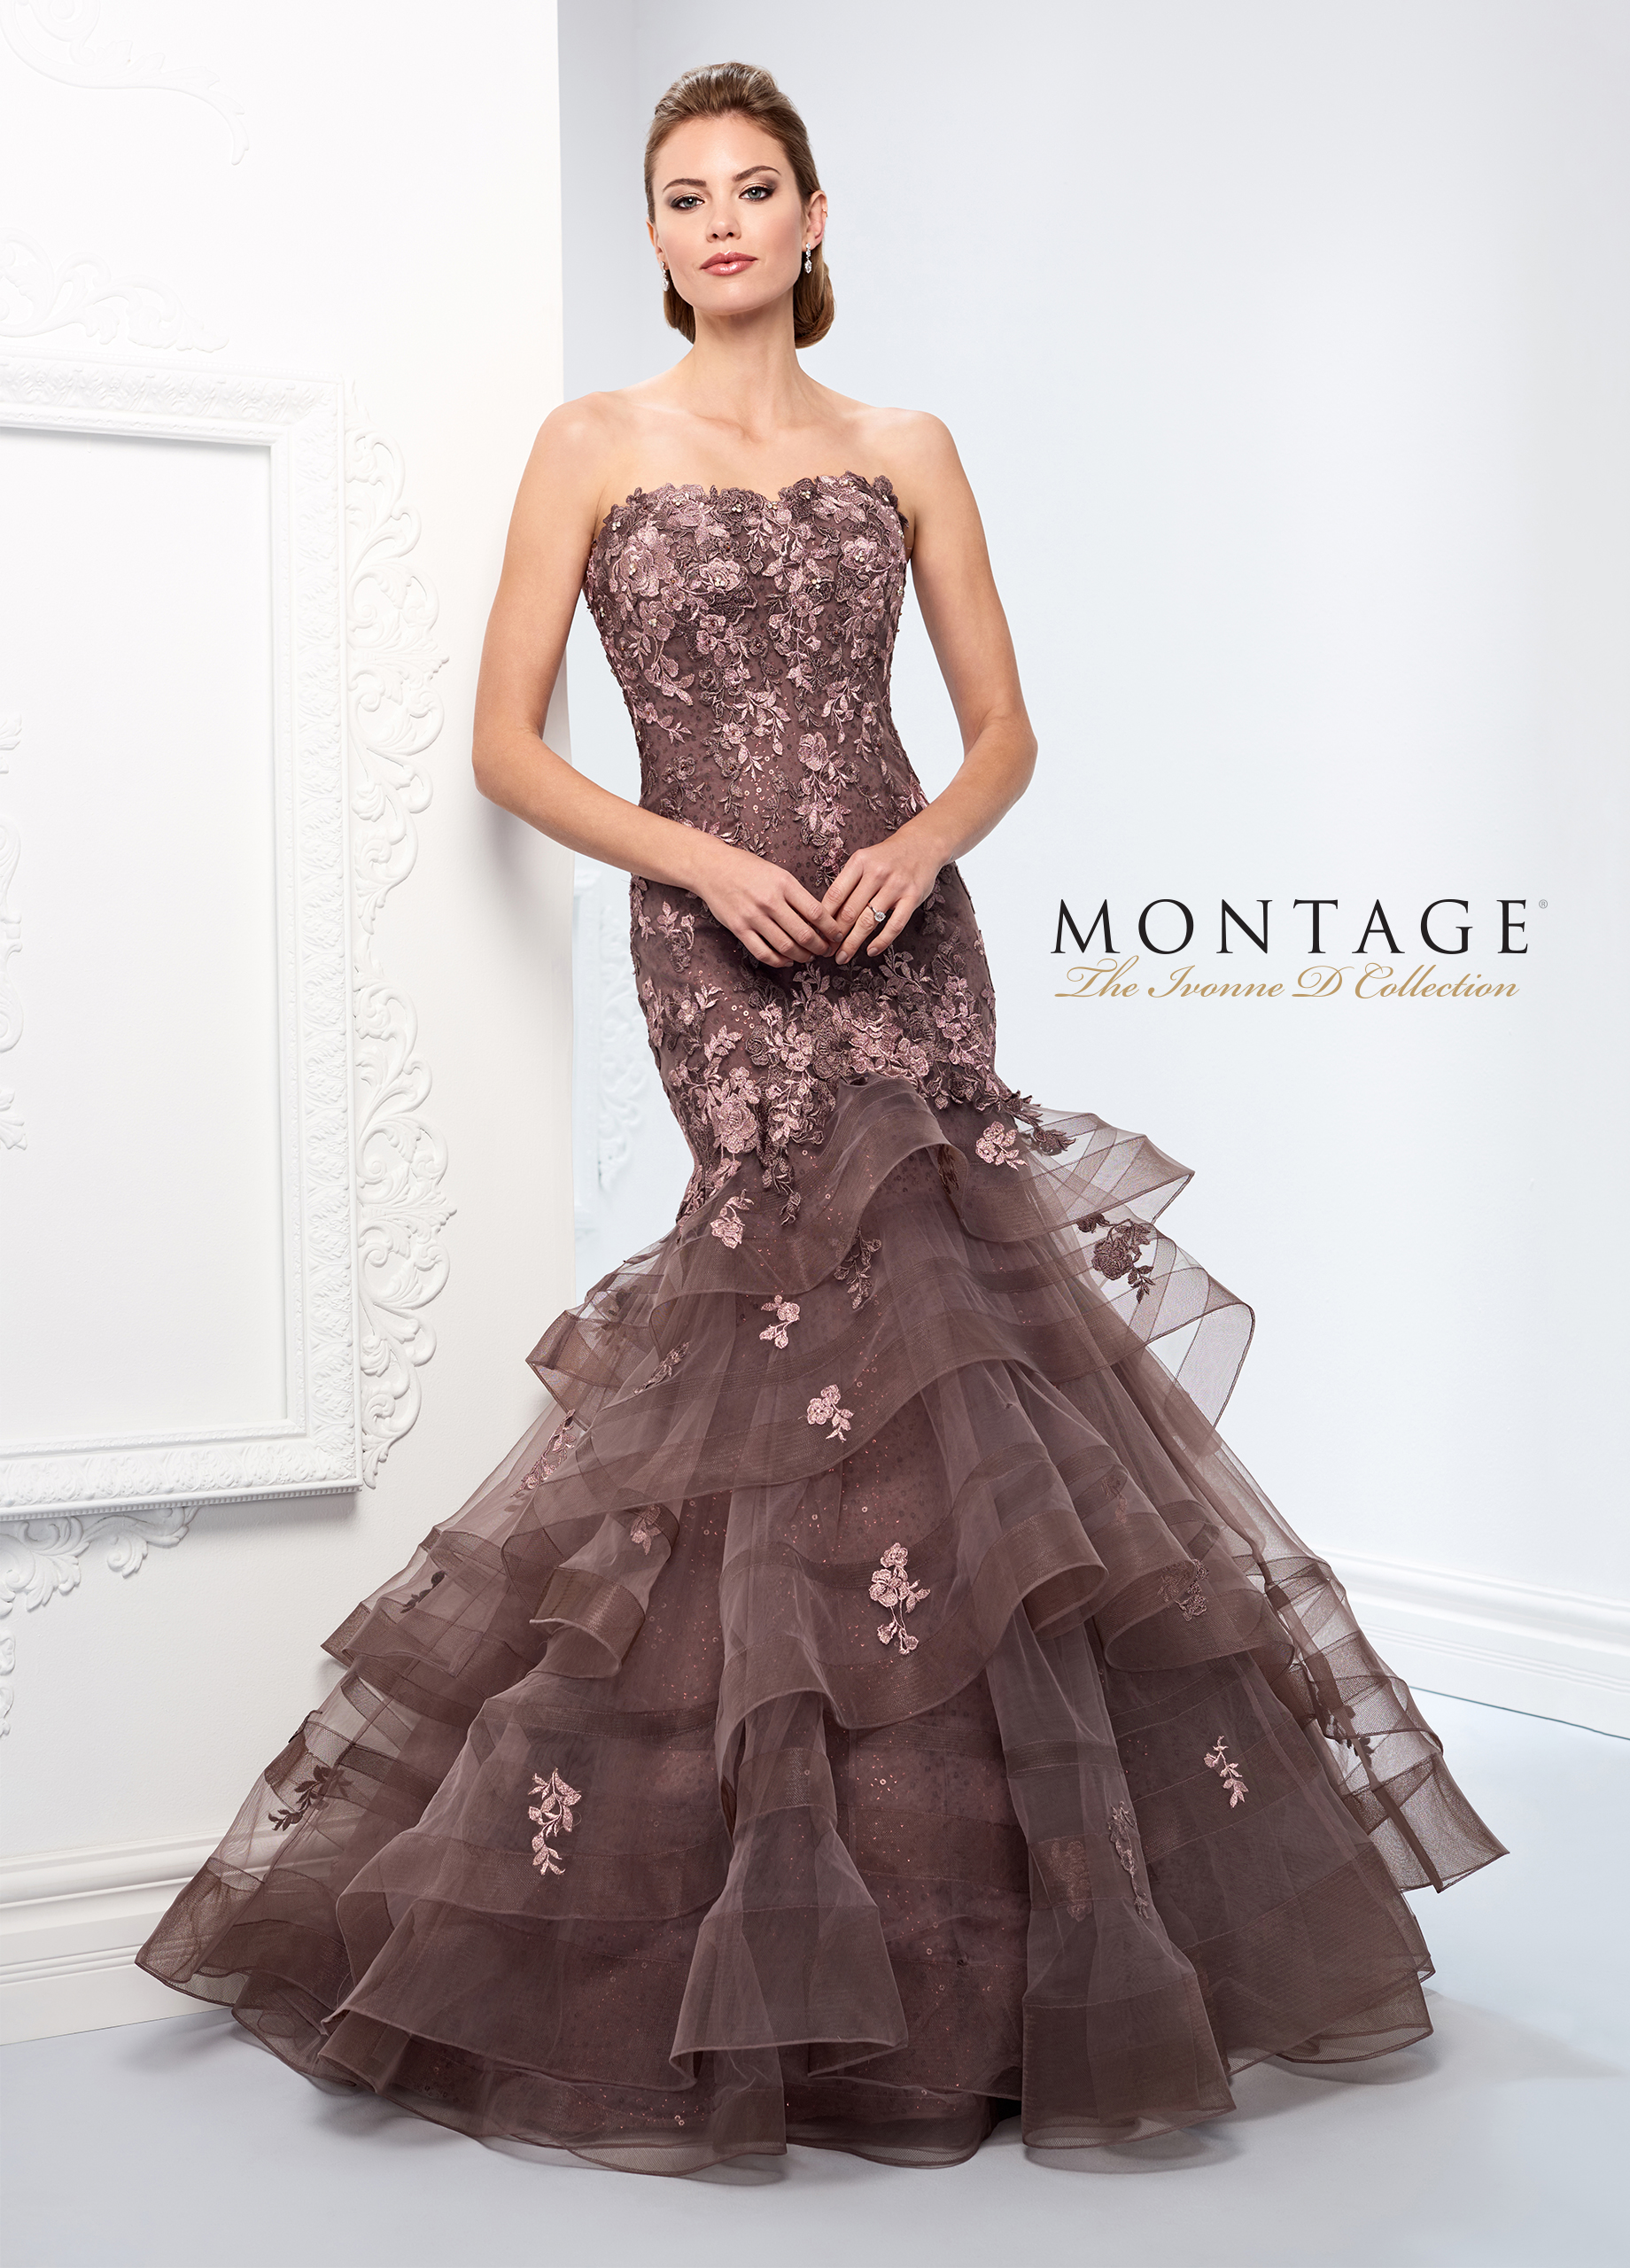 Montage Ivonne D Collection of Beautiful Bridal Dresses – My Stylish Zoo